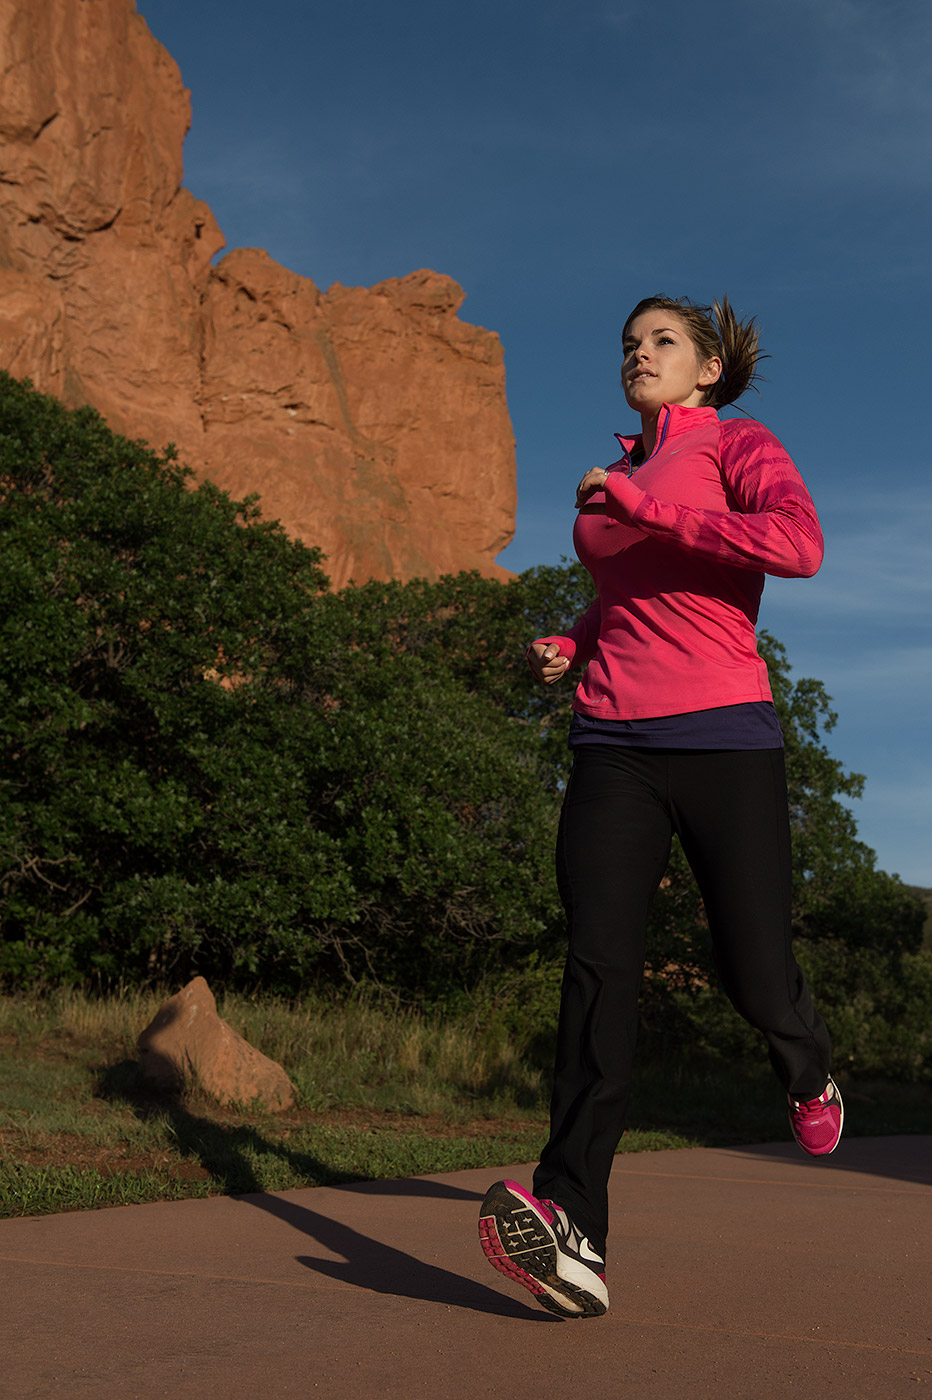 A female athlete run in the Garden of the Gods near Colorado Springs, CO